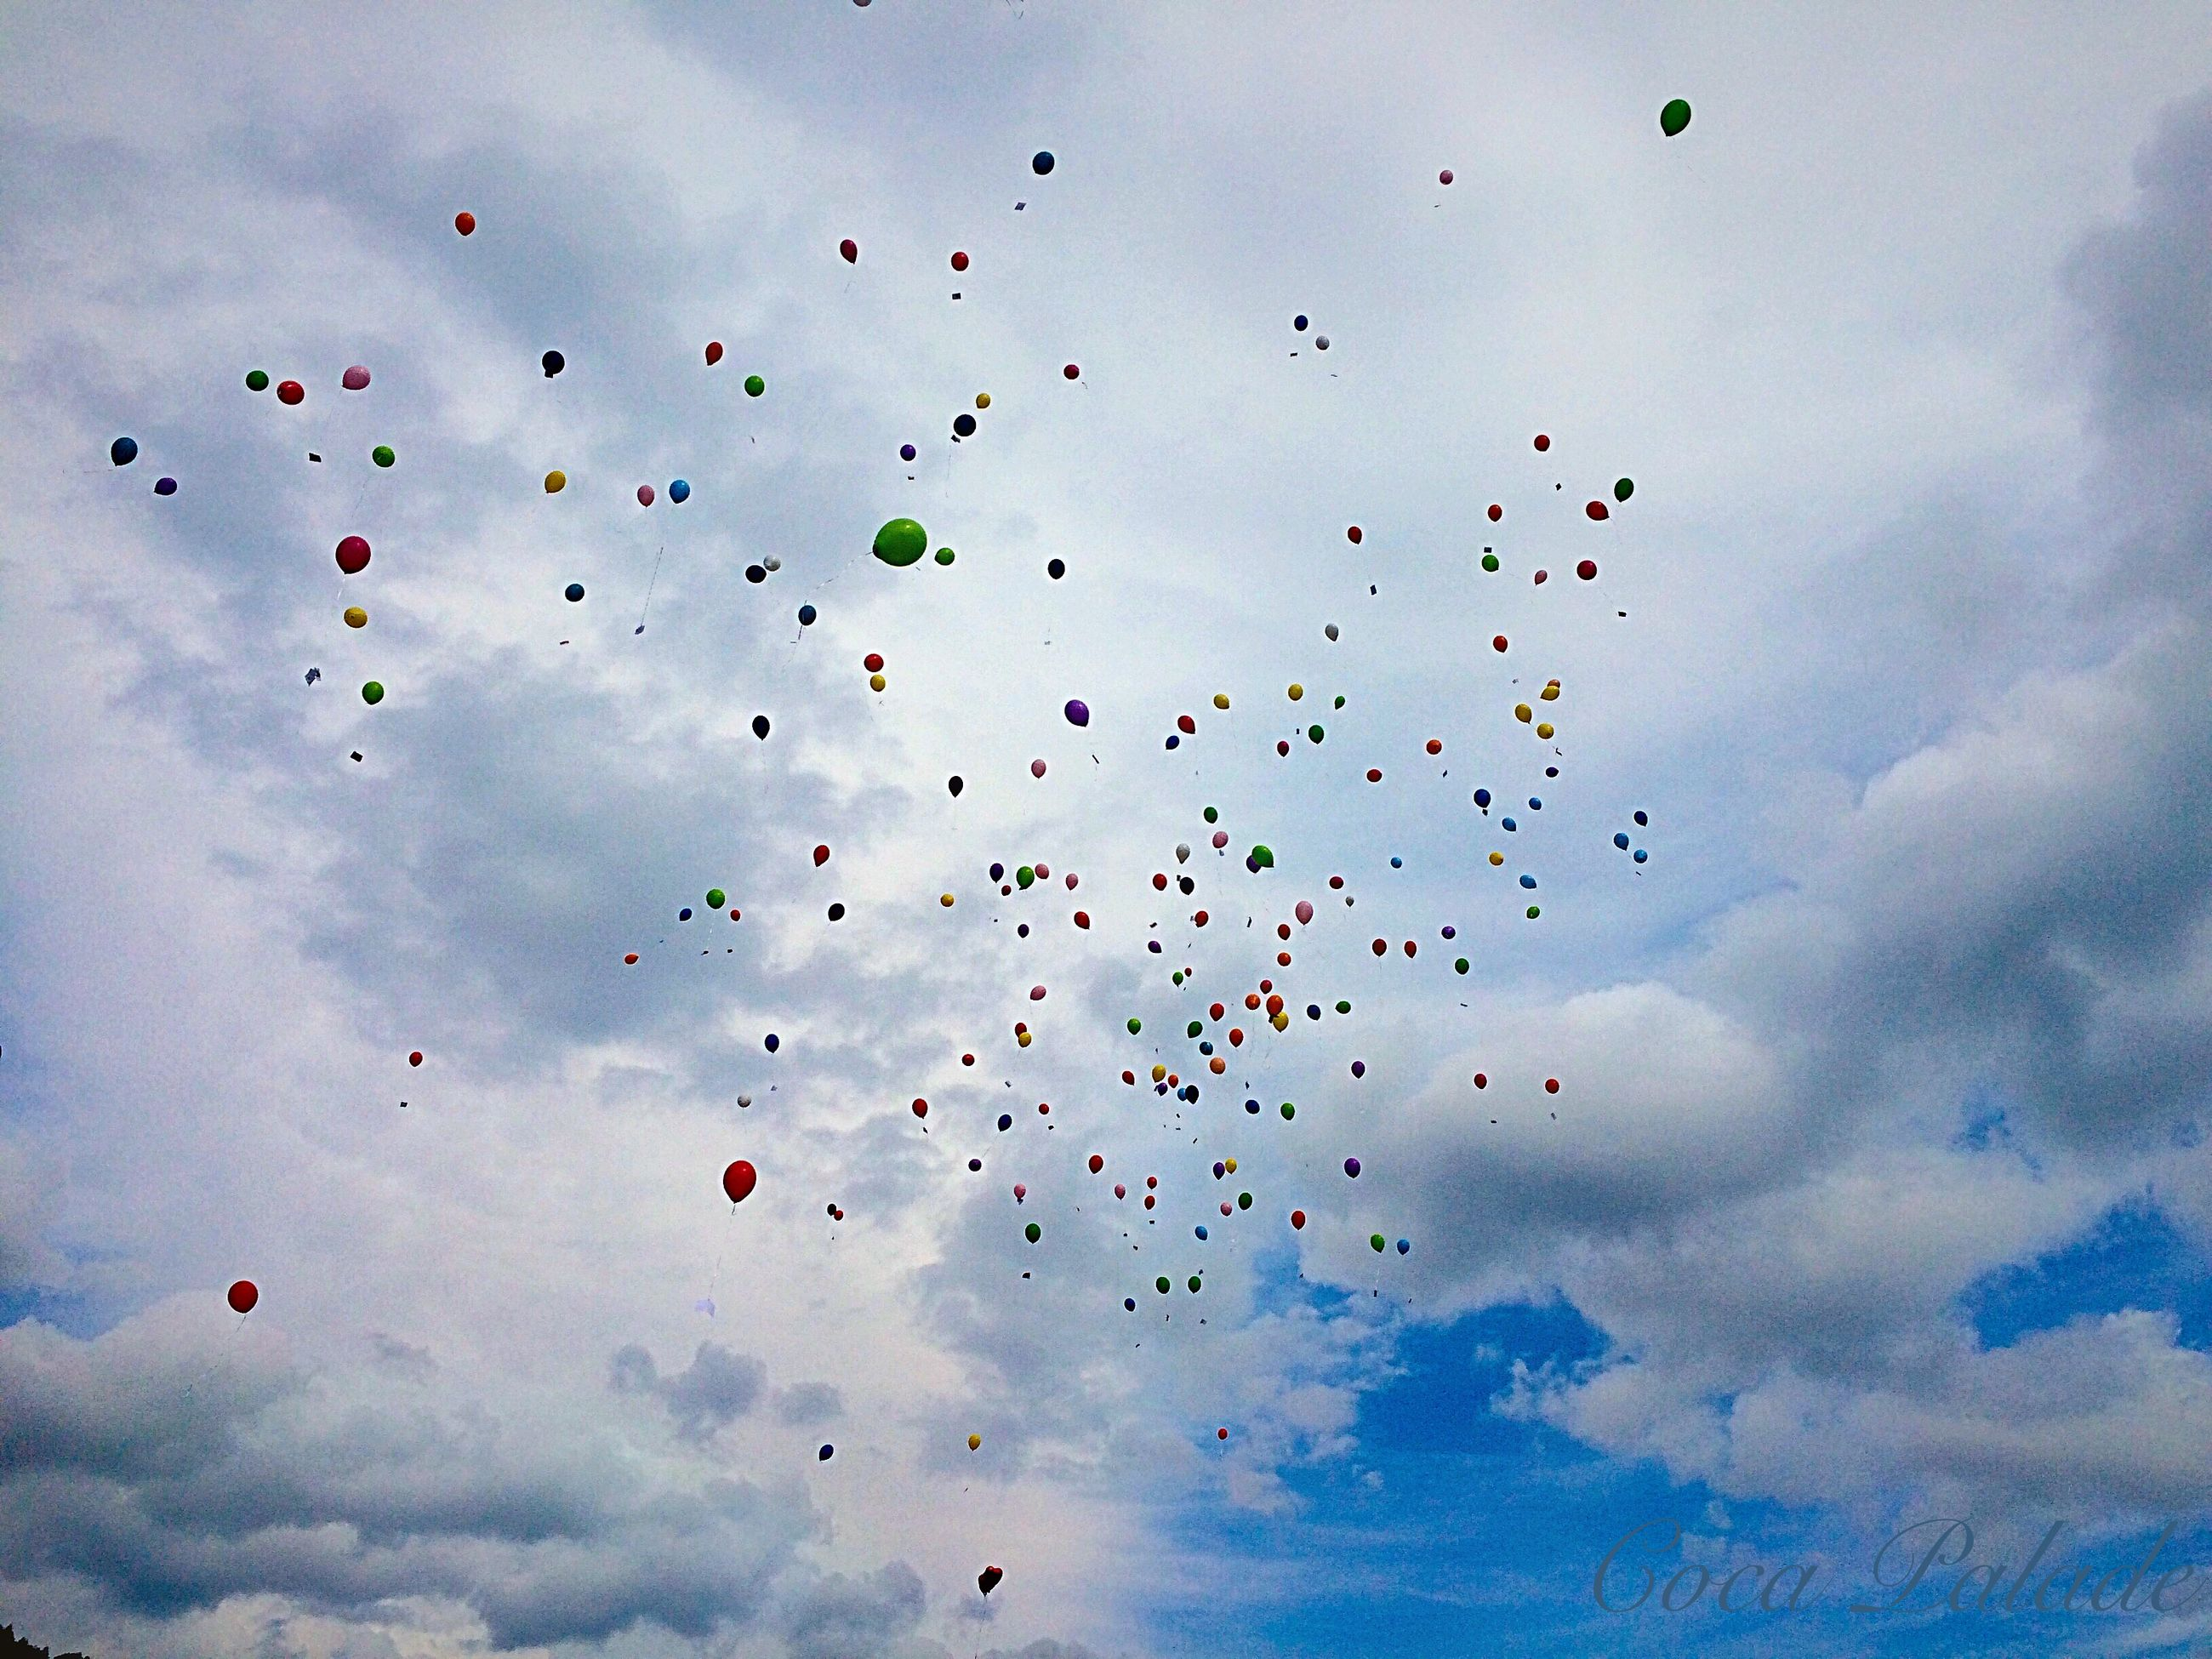 flying, low angle view, mid-air, sky, cloud - sky, blue, freedom, multi colored, flock of birds, motion, kite - toy, cloud, balloon, nature, day, bird, outdoors, no people, cloudy